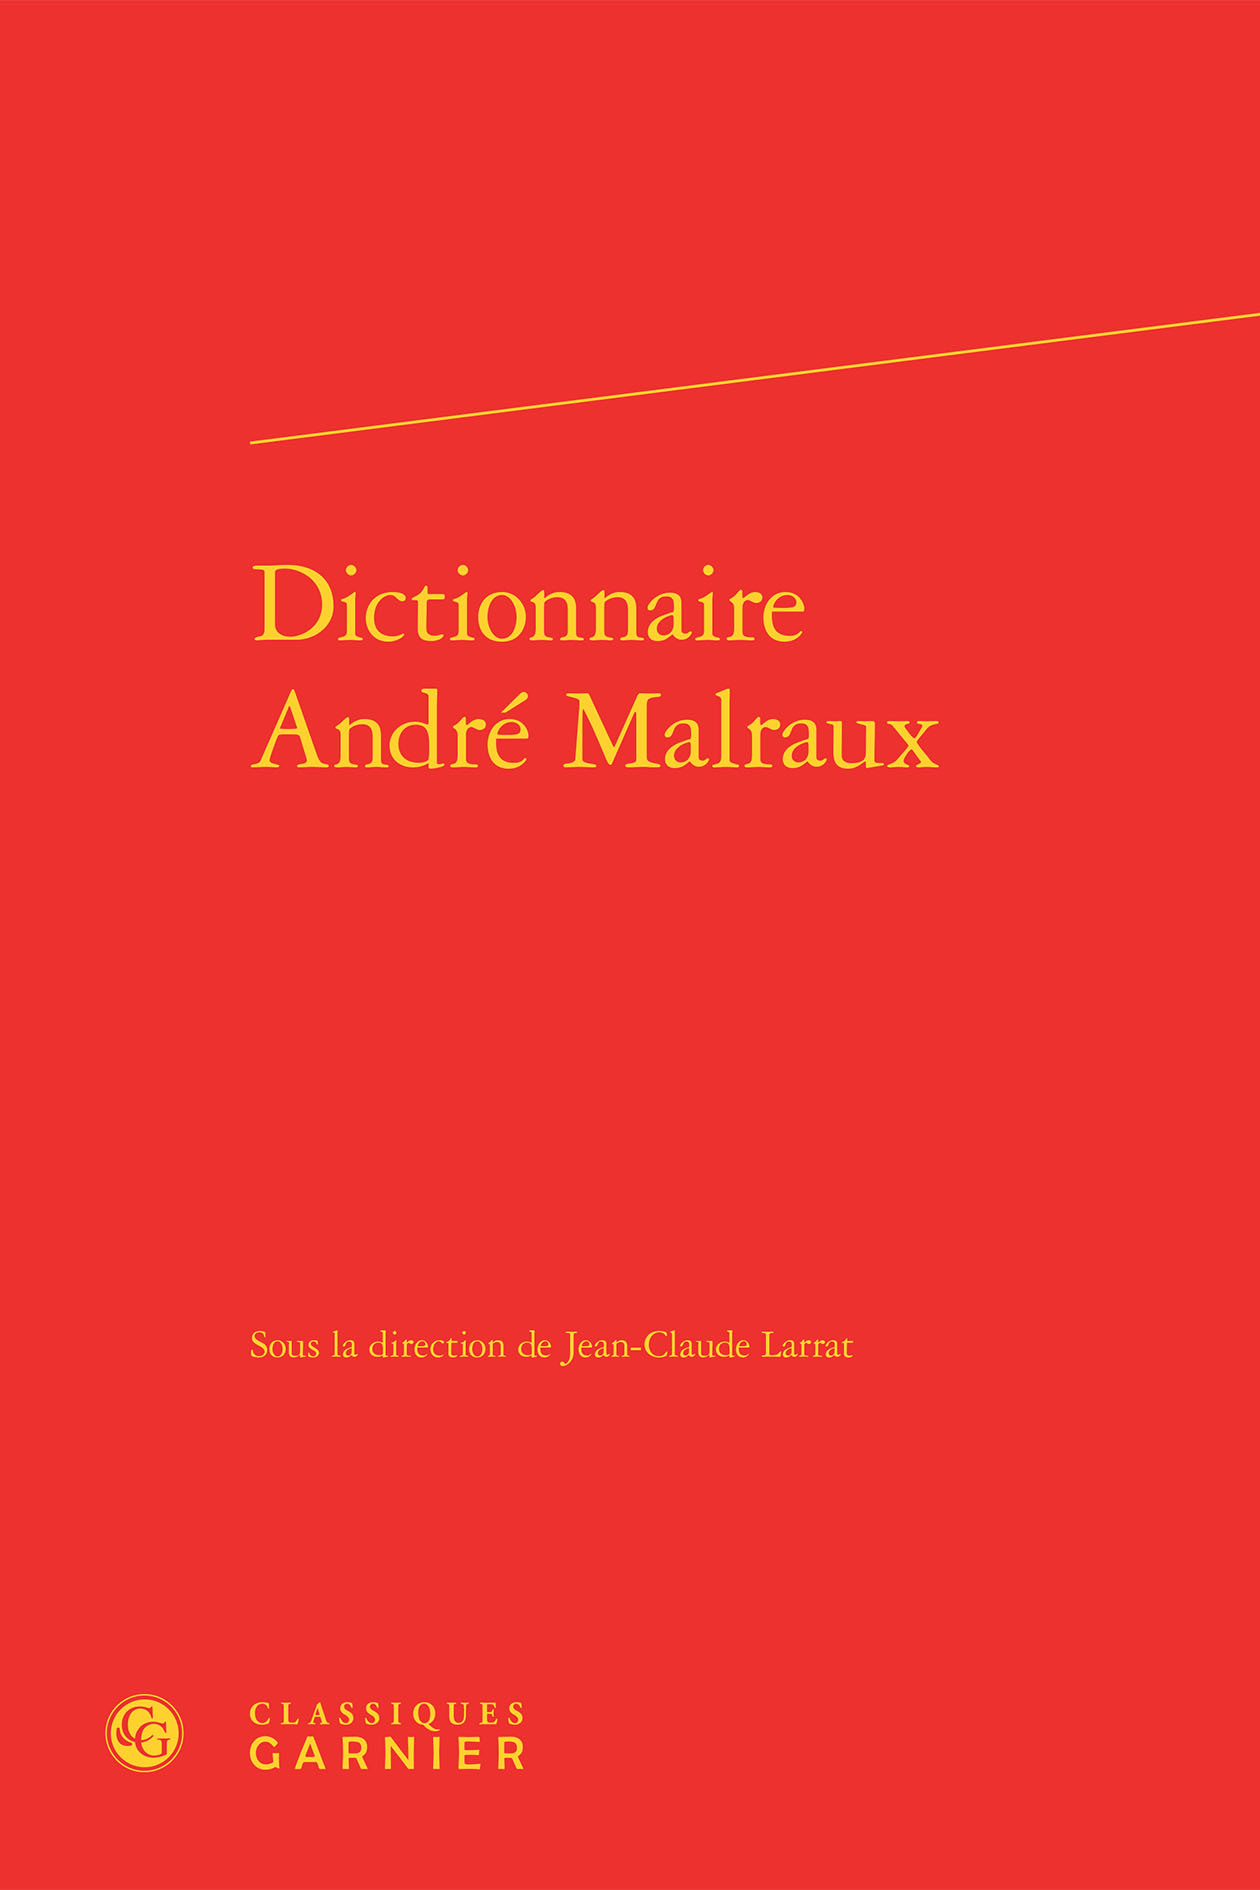 DICTIONNAIRE ANDRE MALRAUX